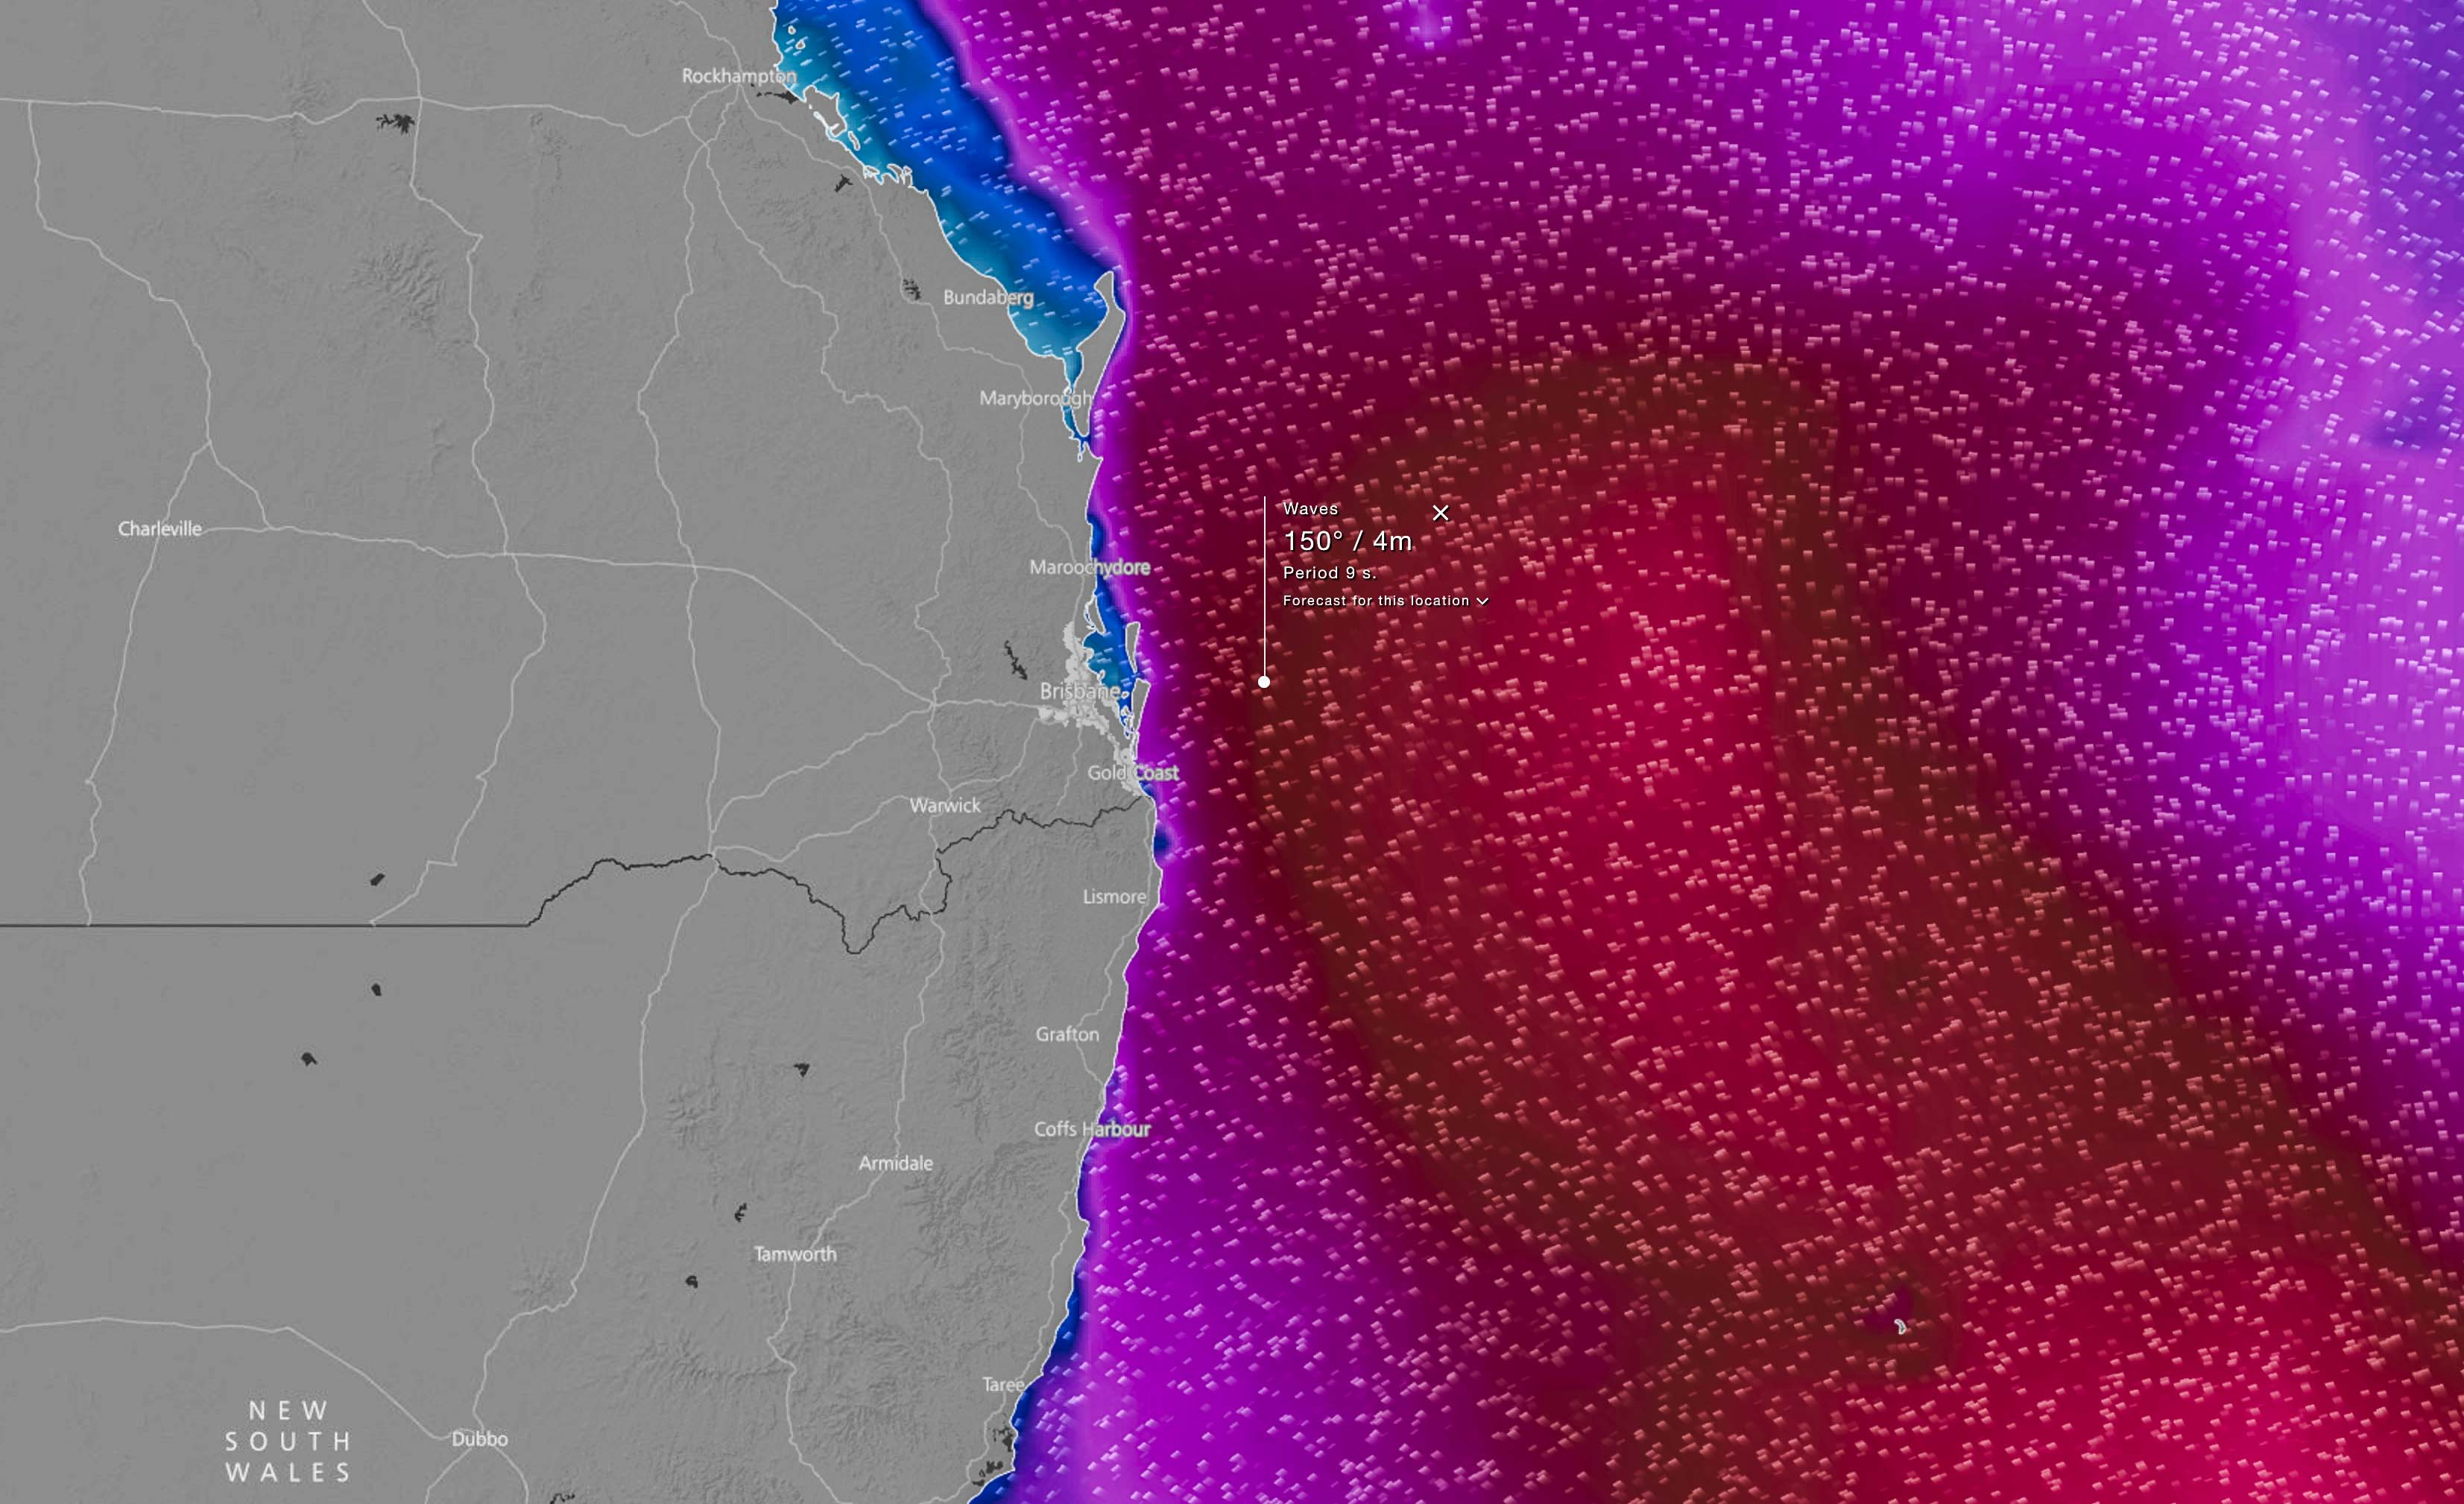 Forecast wave heights via EC Model / WindyTV on Tuesday (June 20th) - maroon 4m height, lighter red >5m